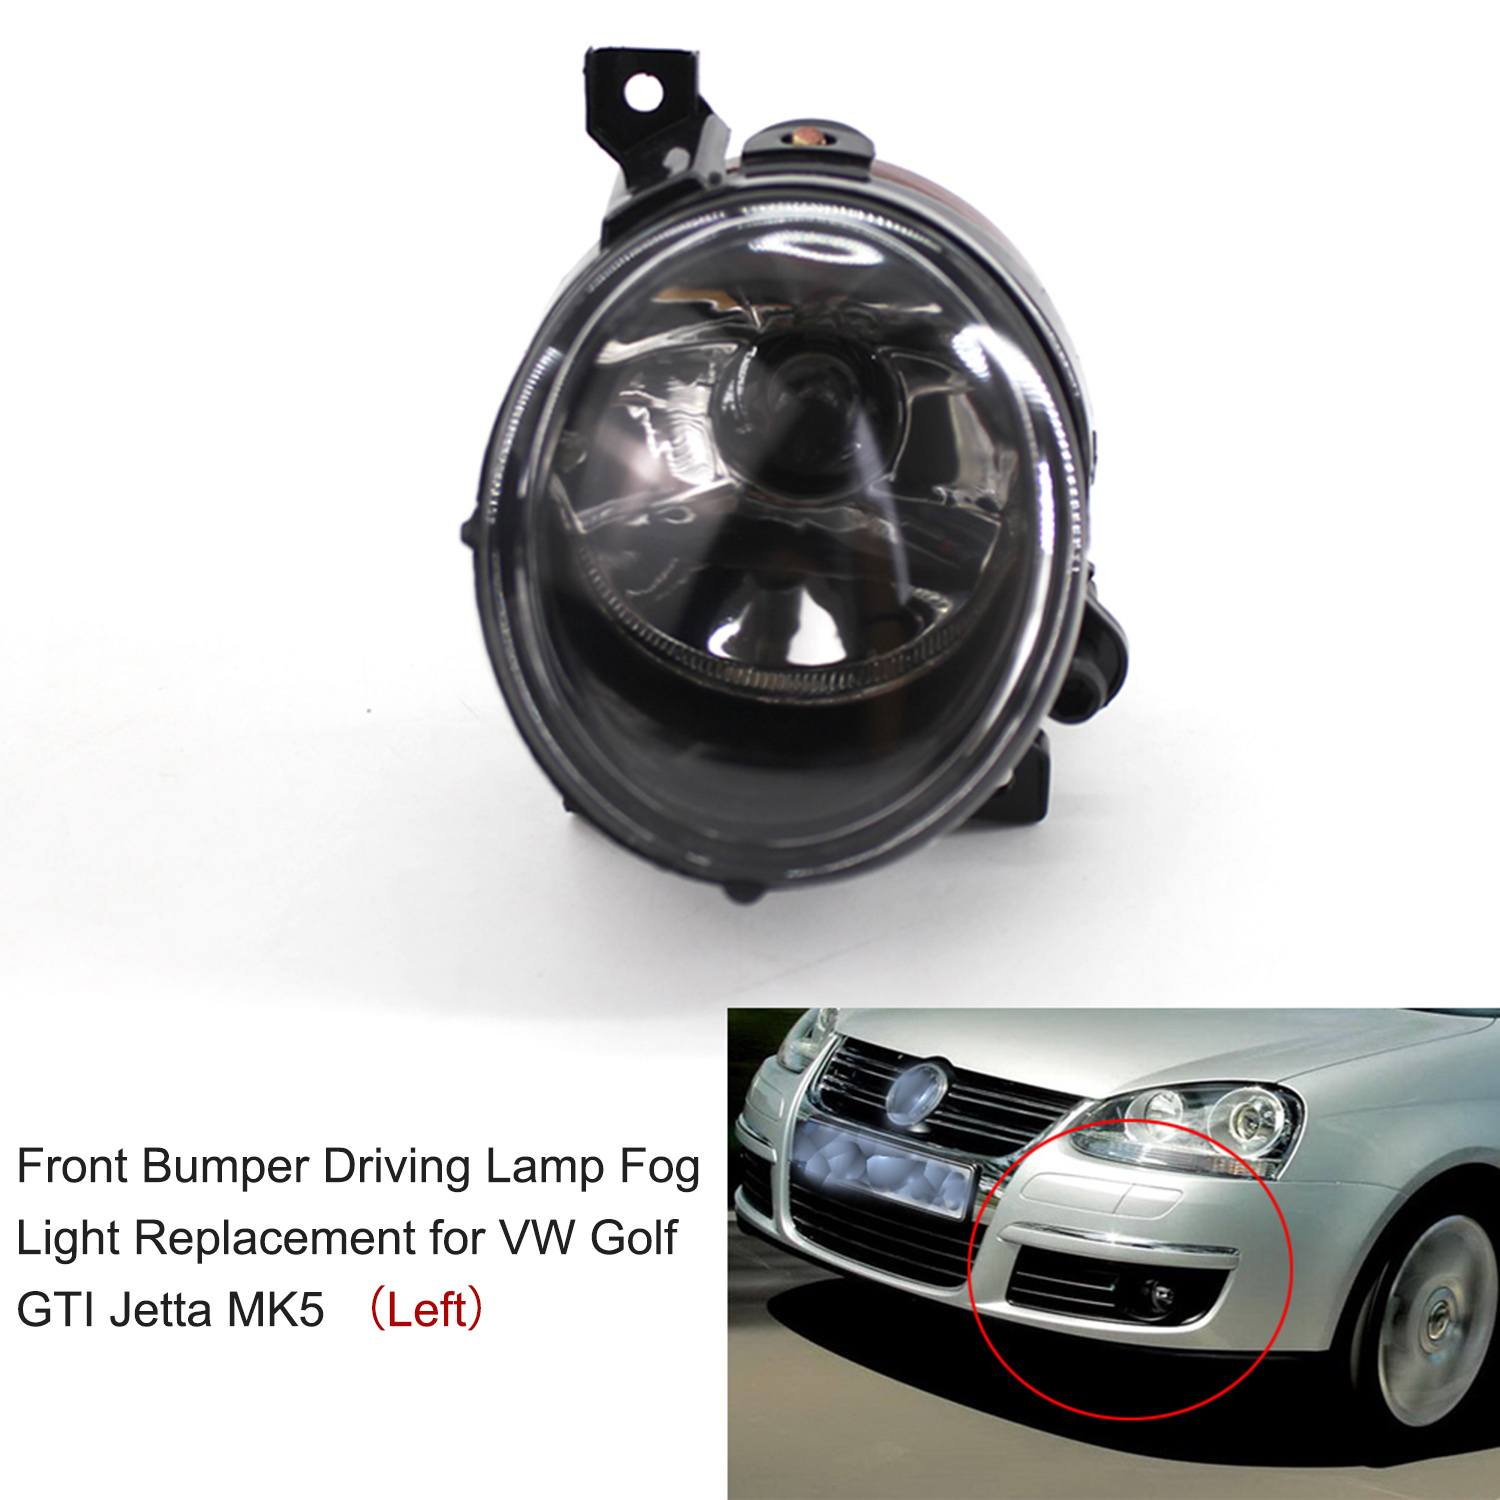 2pcs Round <font><b>Led</b></font> Fog <font><b>Lights</b></font> Front Bumper Headlight Driving Lamp Fog <font><b>Light</b></font> 1KD941699 Replacement for <font><b>VW</b></font> <font><b>Golf</b></font> Jetta <font><b>MK5</b></font> 2005-2009 image